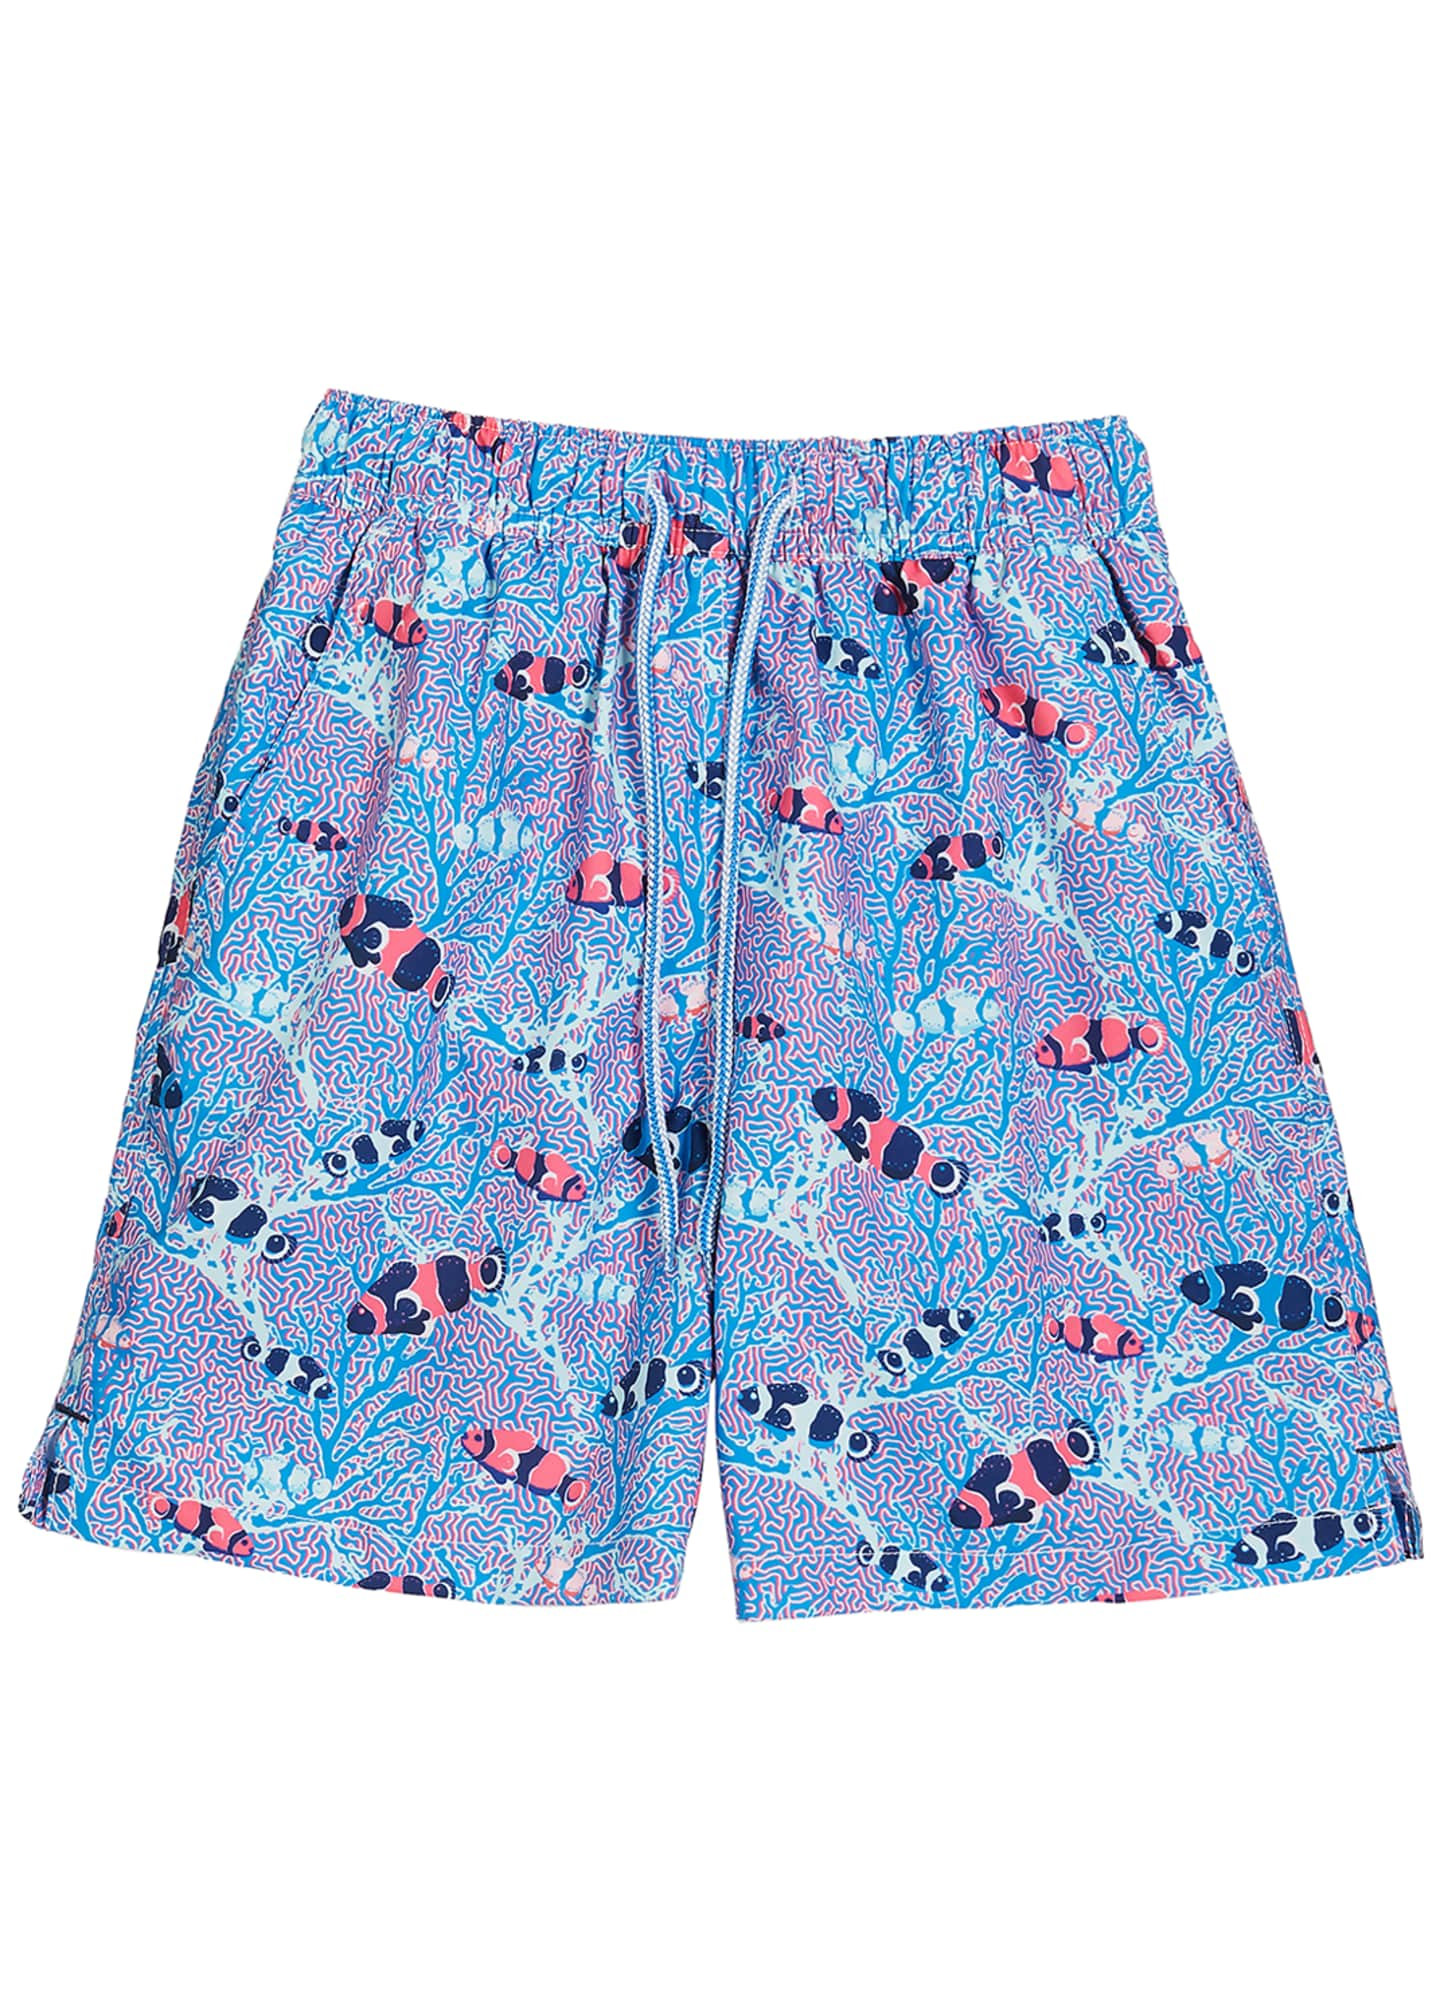 Peter Millar Boy's Friends & Anemones Print Swim